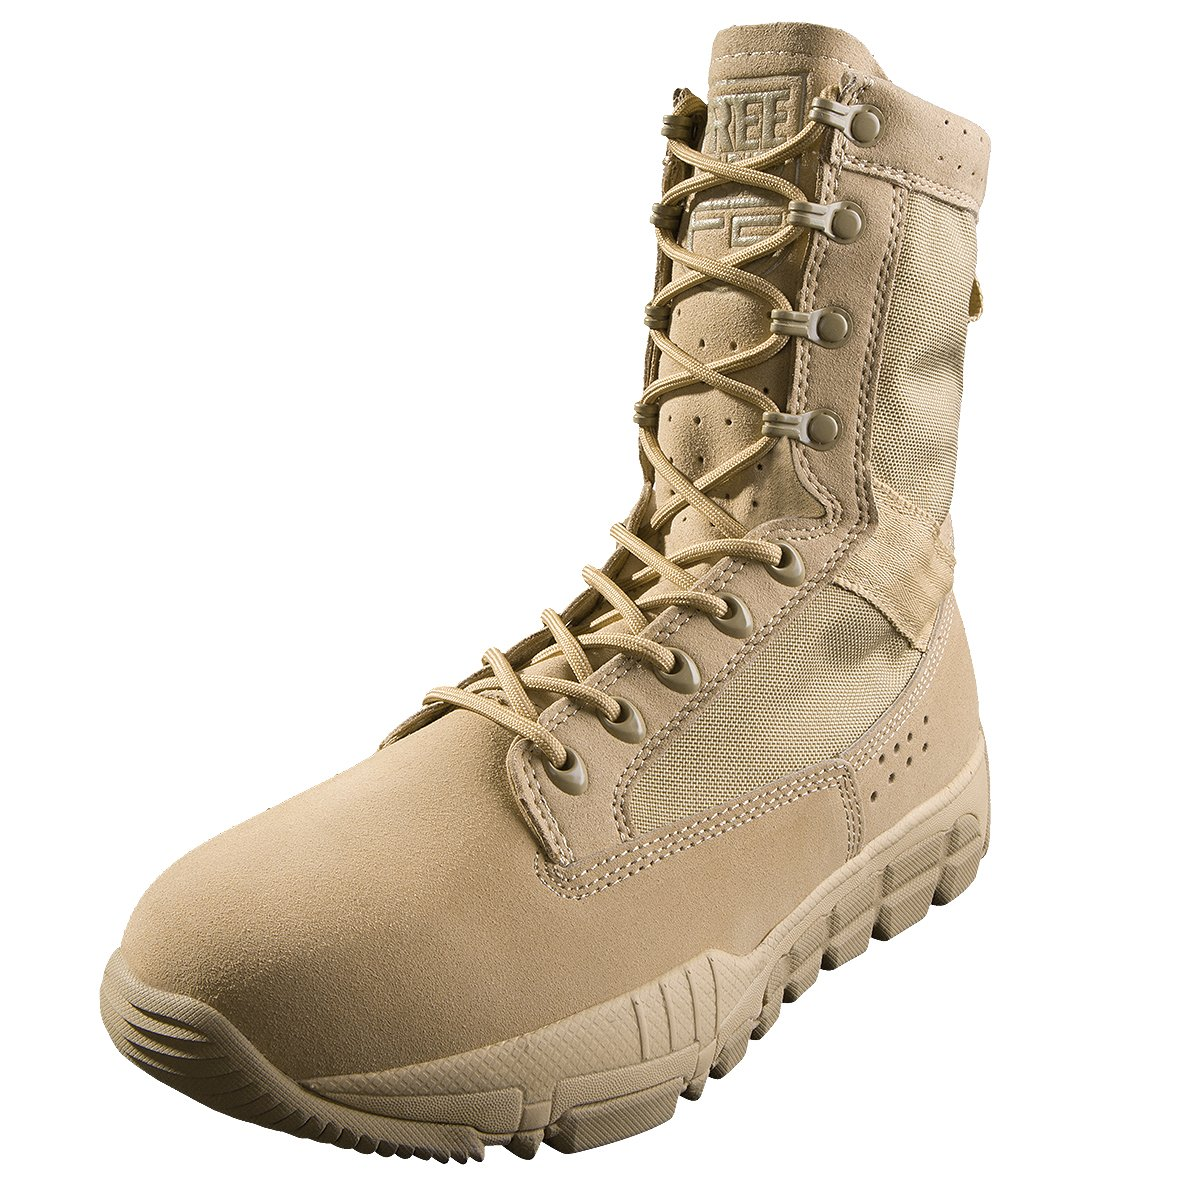 FREE SOLDIER Men's Outdoor Ultralight Breathable Military Desert Boots Tactical Duty Work Boot(Desert Tan 8.5) by FREE SOLDIER